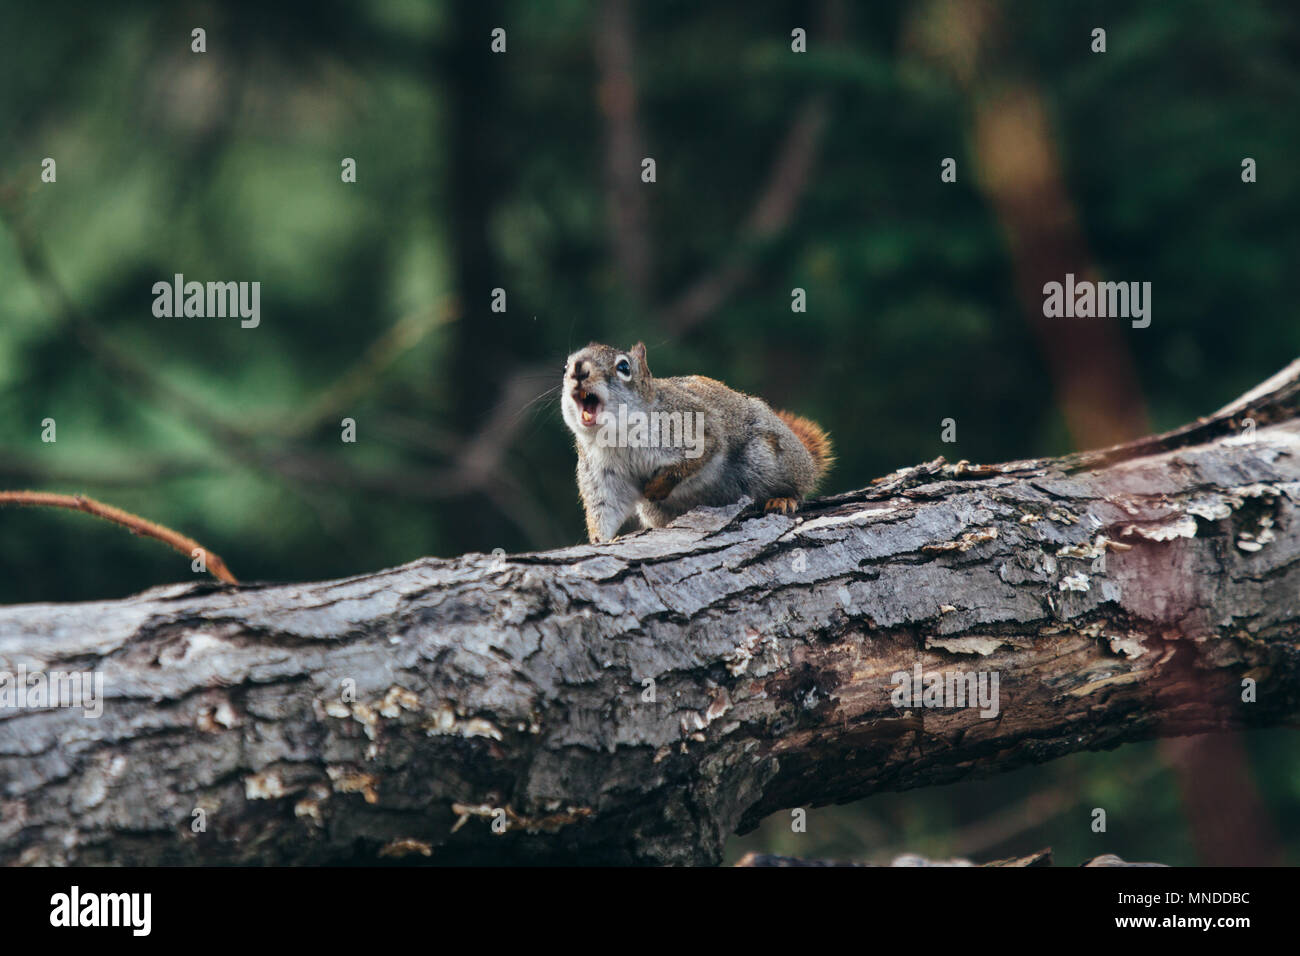 Red squirrel on a tree log - Stock Image